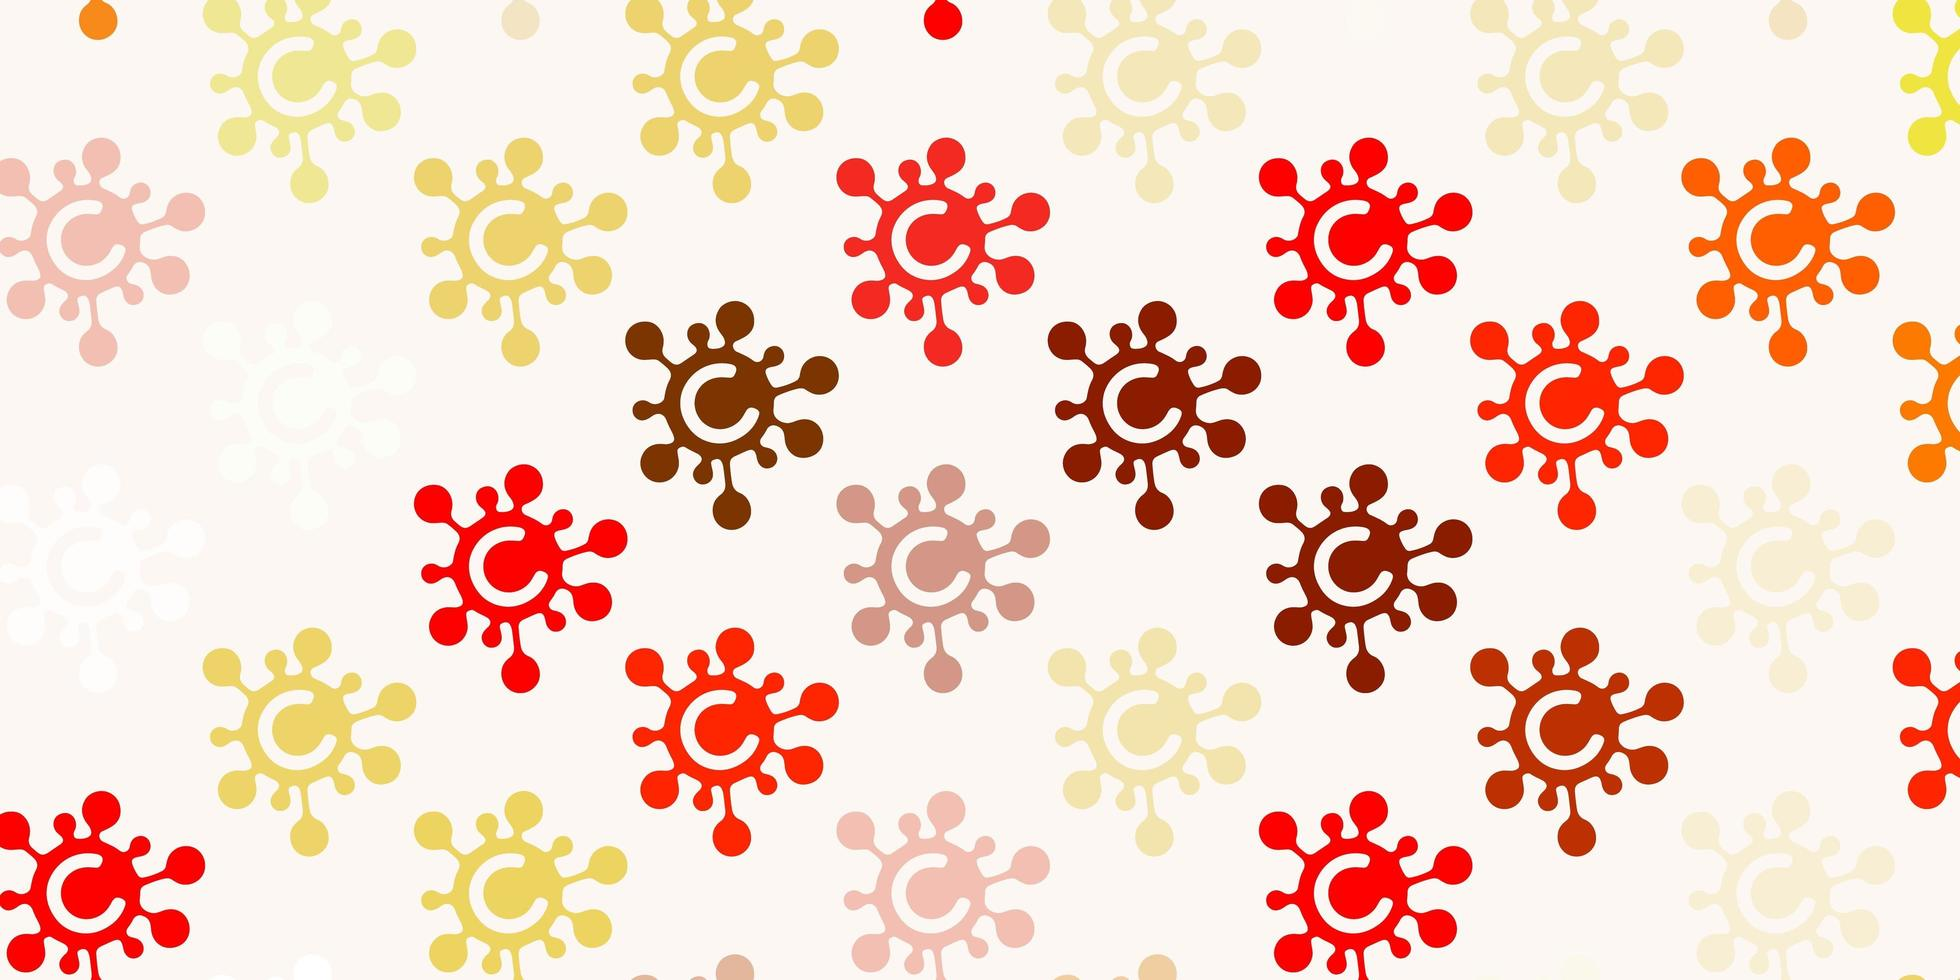 Light Red, Yellow texture with disease symbols. vector